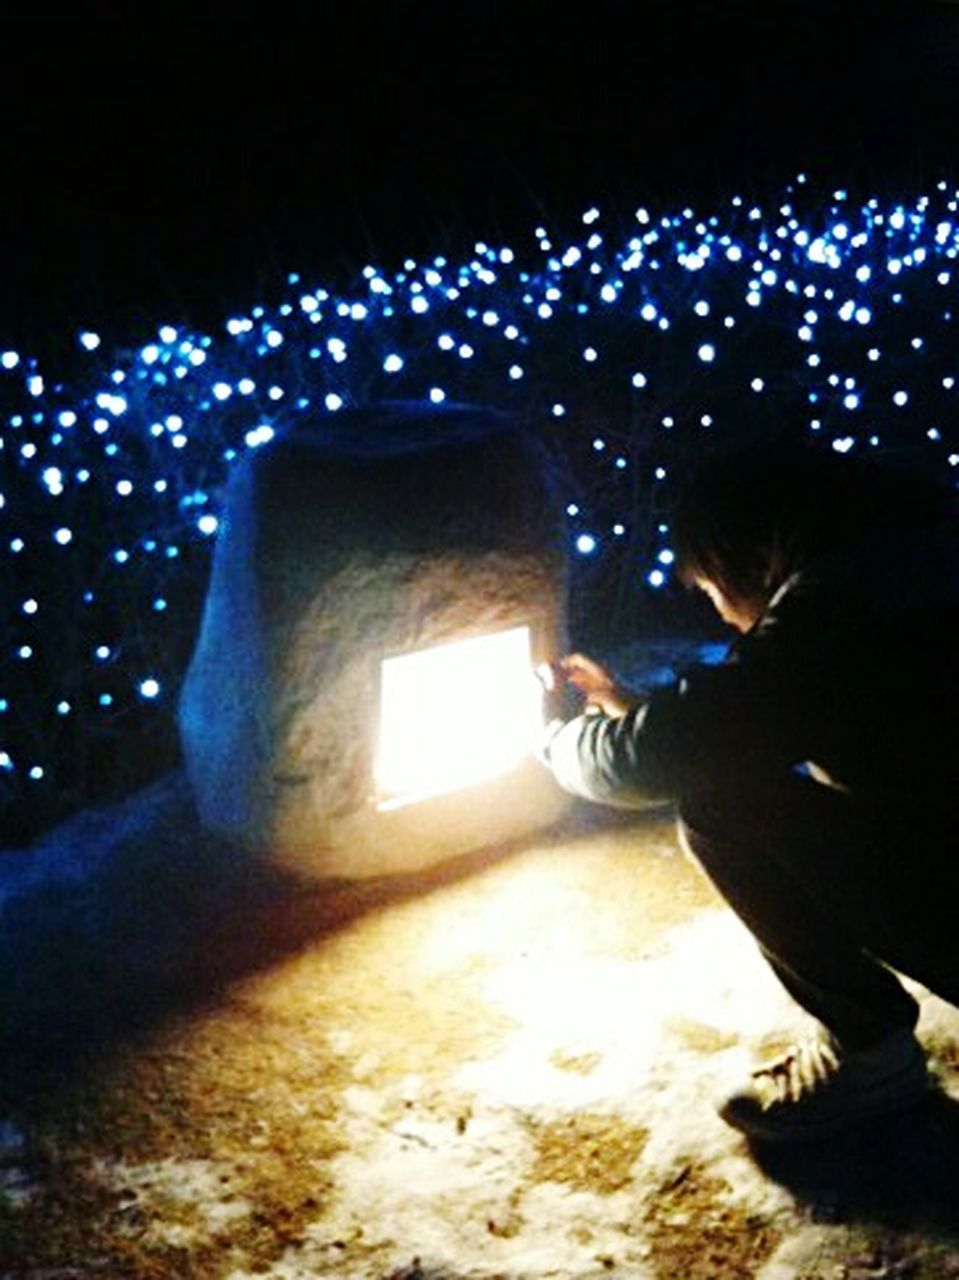 illuminated, night, people, side view, winter, one person, christmas, cold temperature, discovery, outdoors, child, full length, christmas decoration, children only, neon, adult, star - space, tree, one boy only, young adult, warm clothing